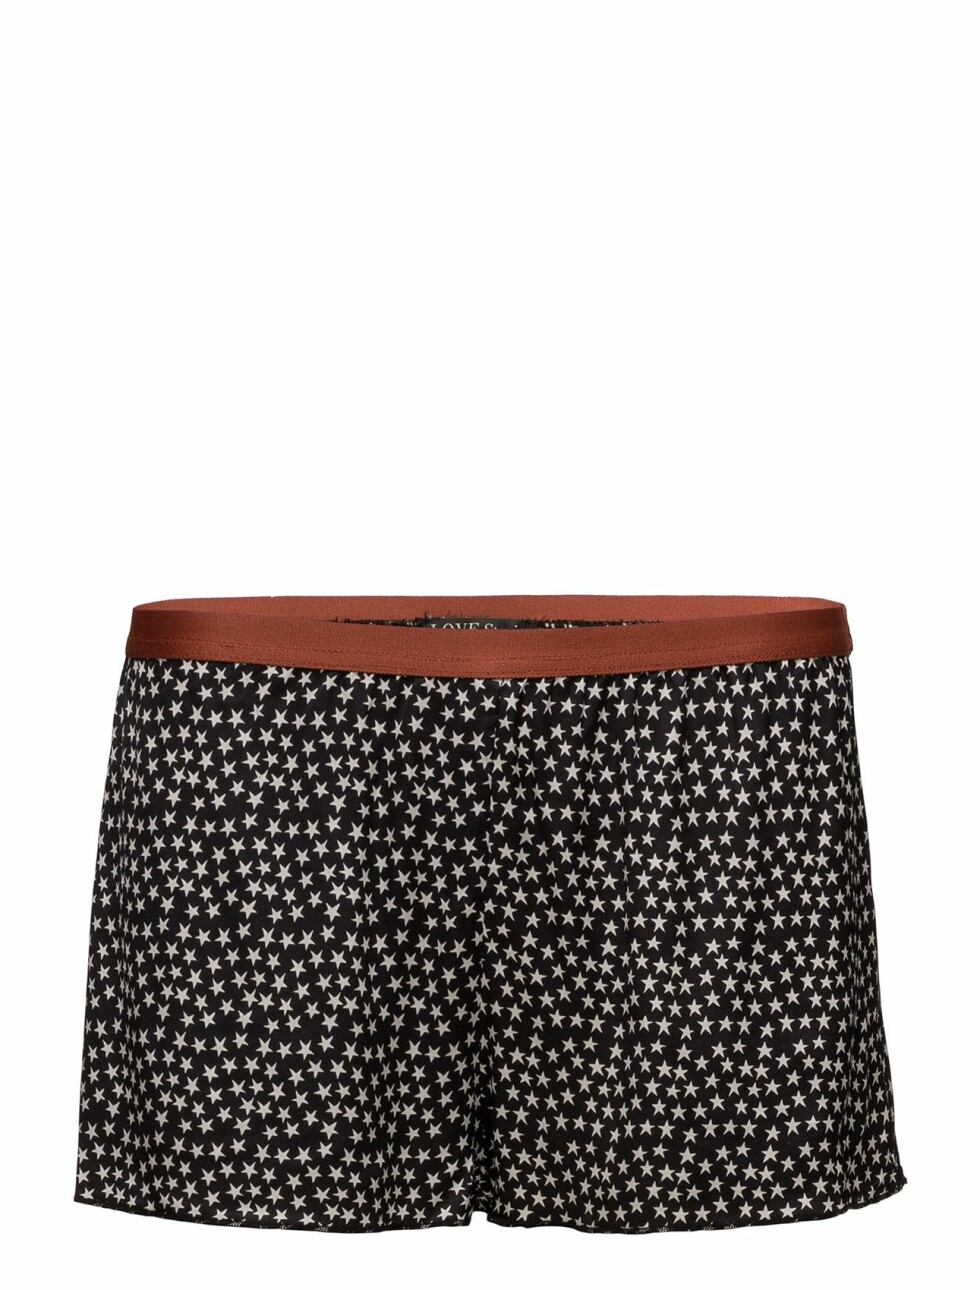 Shorts fra Love Stories |650,-| https://www.boozt.com/no/no/love-stories/edie-s_18337459/18337466?position=2&group=related